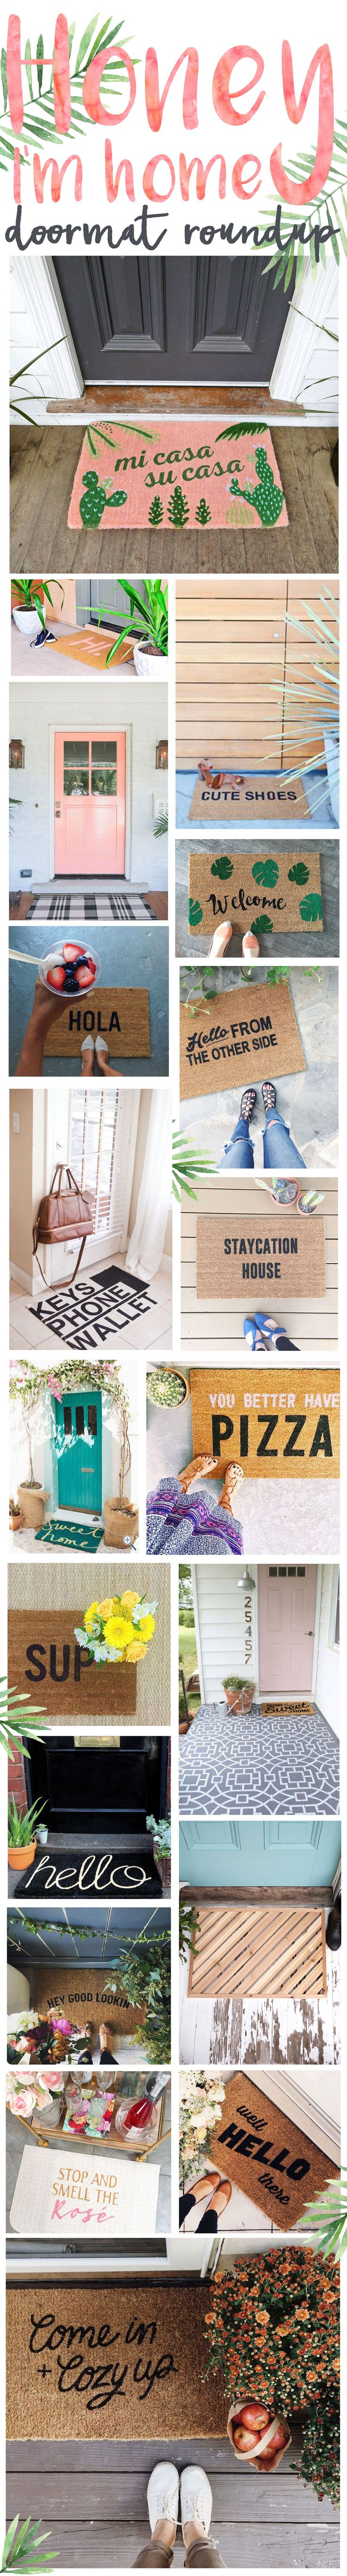 | Mi Casa Su Casa | DIY Hi. | Cute Shoes | Plaid | Welcome Fronds | Hola | Hello from the Other Side | Keys Phone Wallet | Staycation House | Sweet Home |